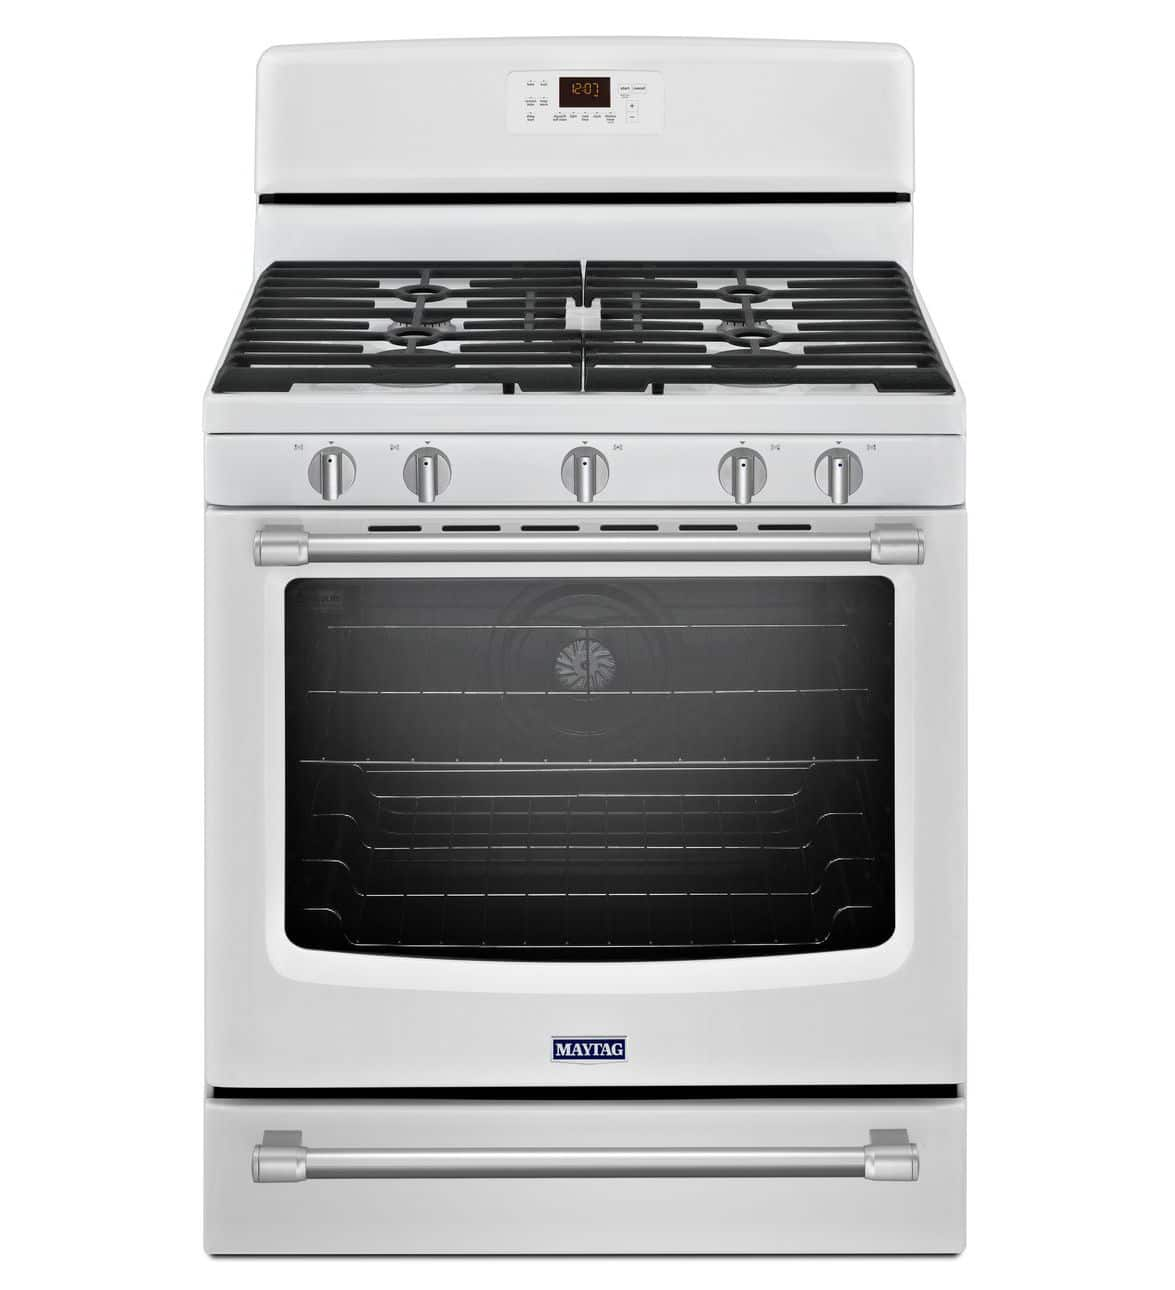 A couple of gas ranges with convection ovens starting at $599w/free ship (Whirlpool Stainless/Black was $899).